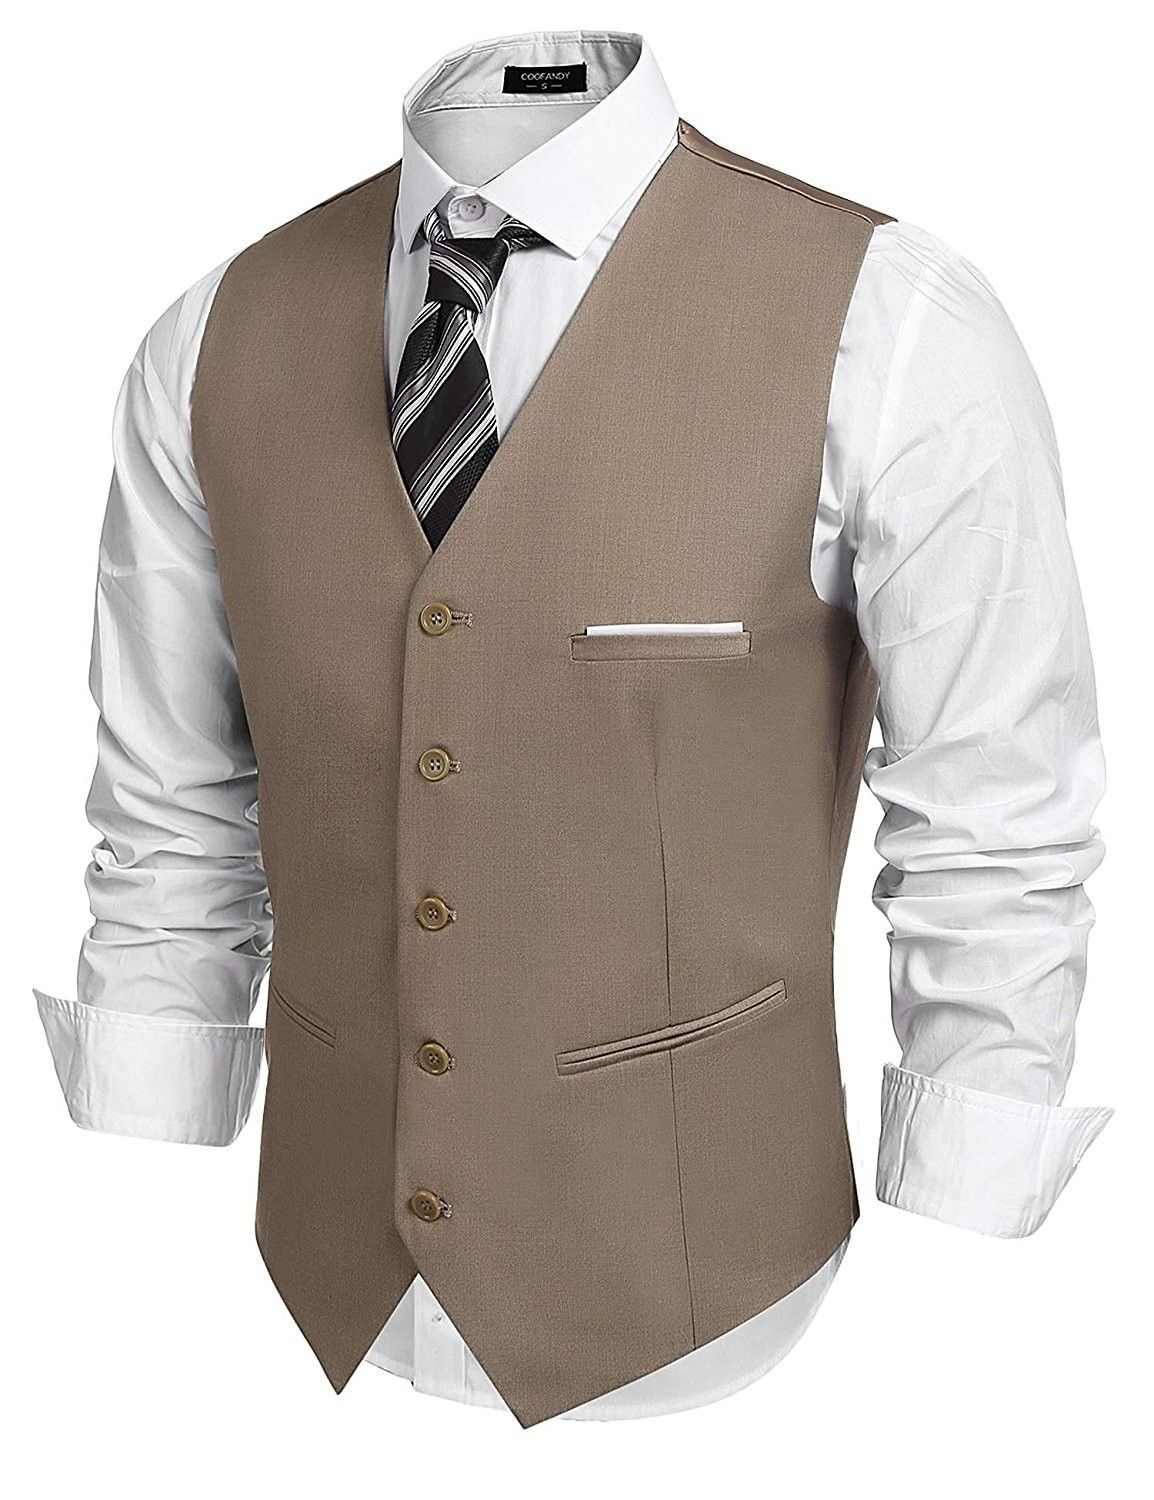 aefcae86559 Men's Fashion Formal Slim Fit Business Dress Suit Vest Waistcoat ...